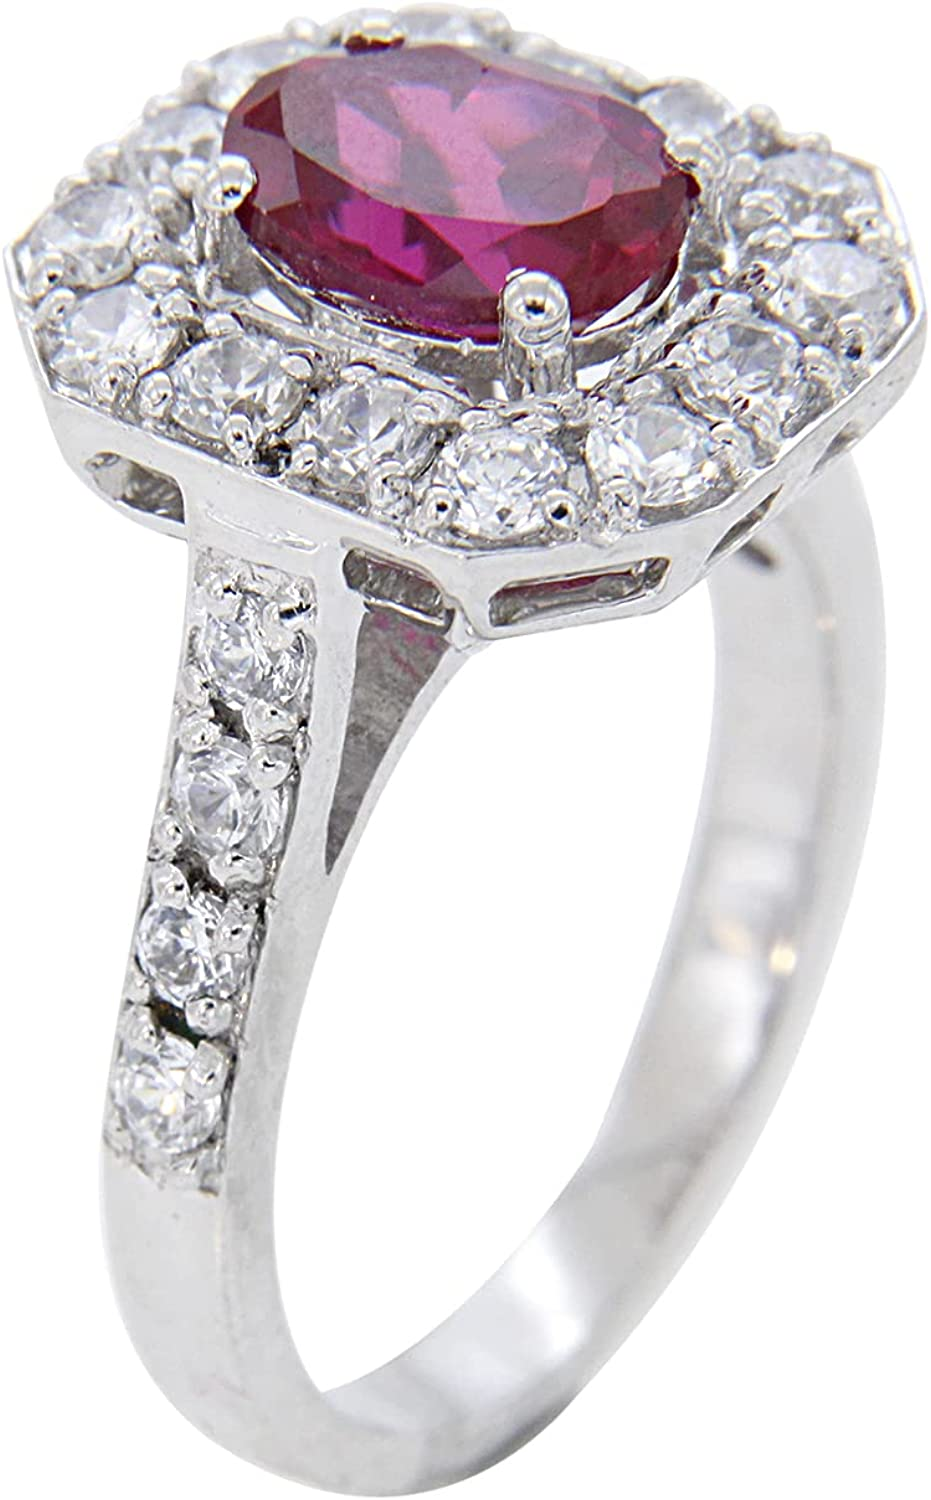 IGI Certified 1.32 Carat Emerald-Cut Long Beach Mall oval Engagement w Directly managed store Ruby Ring